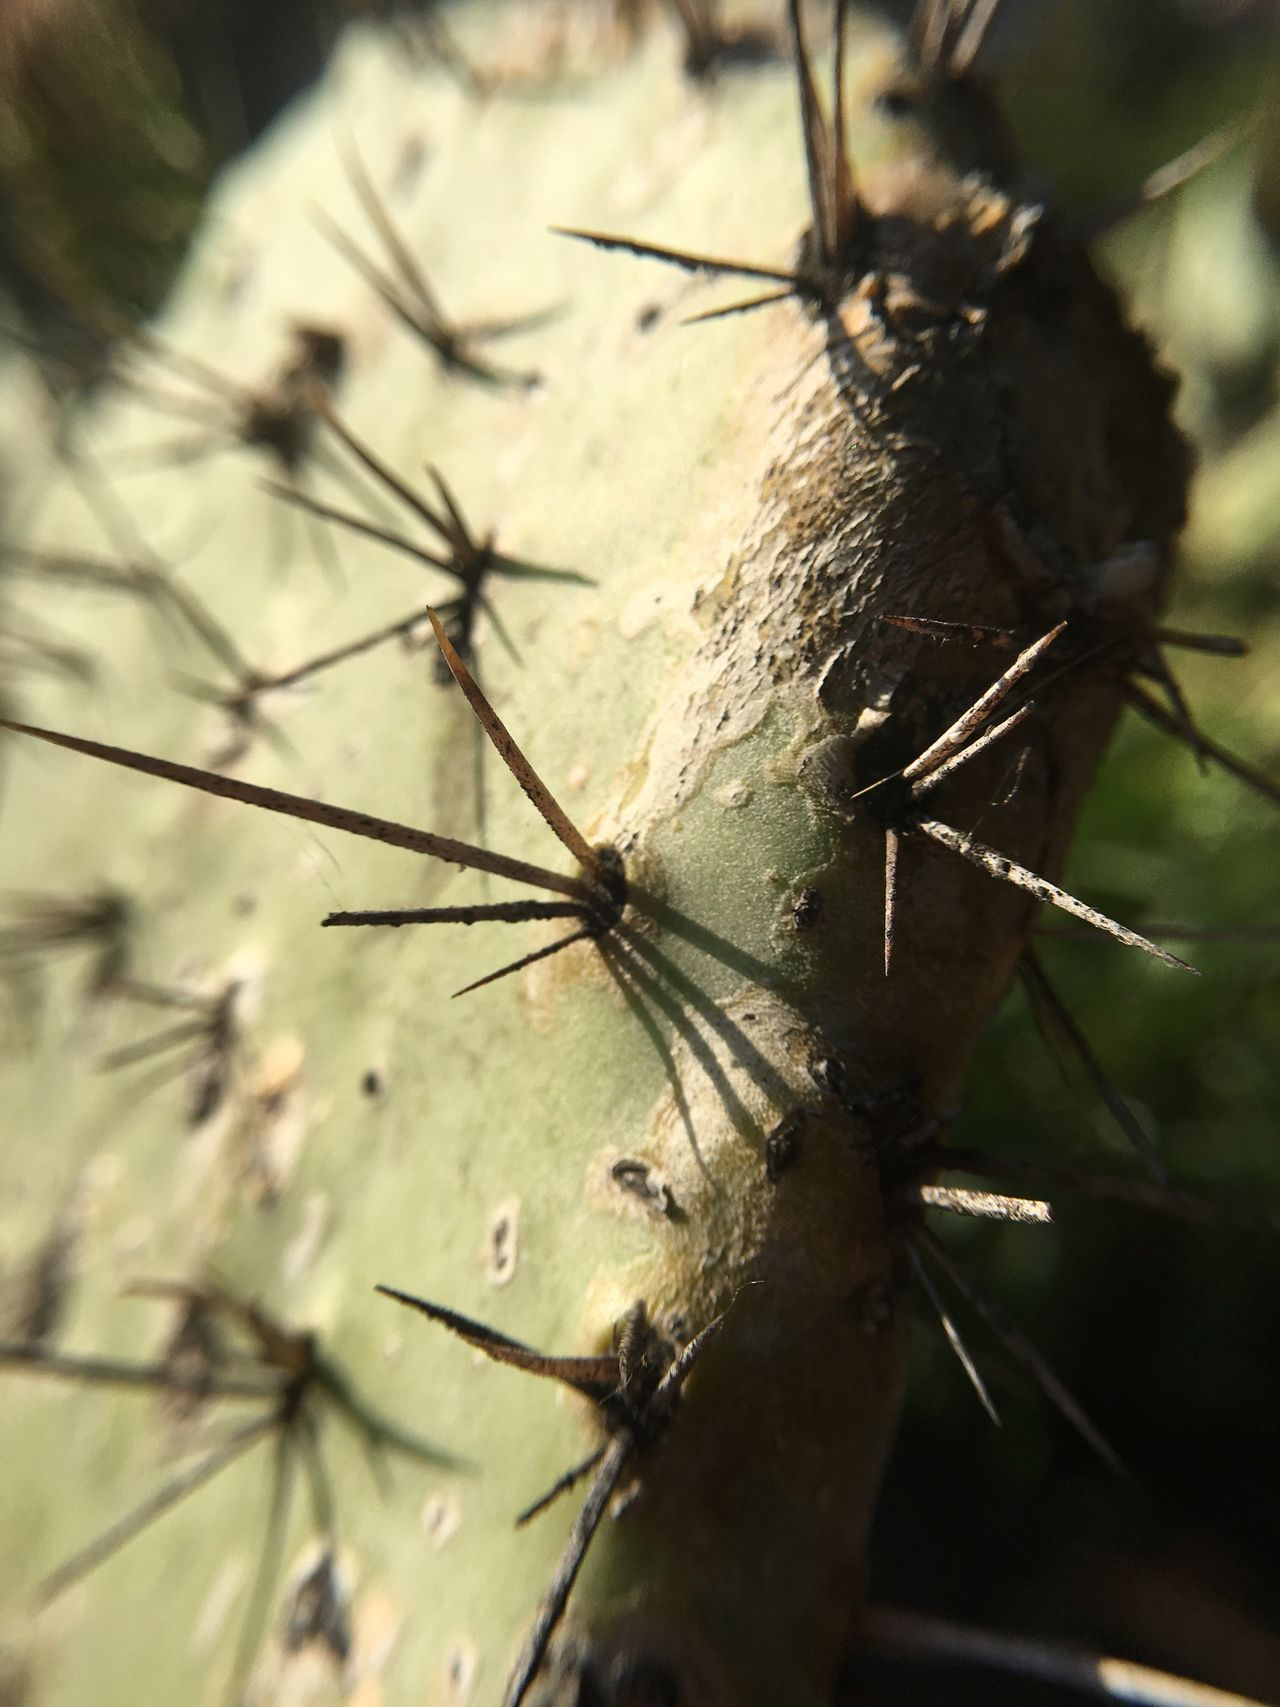 Focus On Foreground Nature Plant Close-up Outdoors Day Cactus Cacti Succulents Spines Spiky Spikes Macro Green Desert California